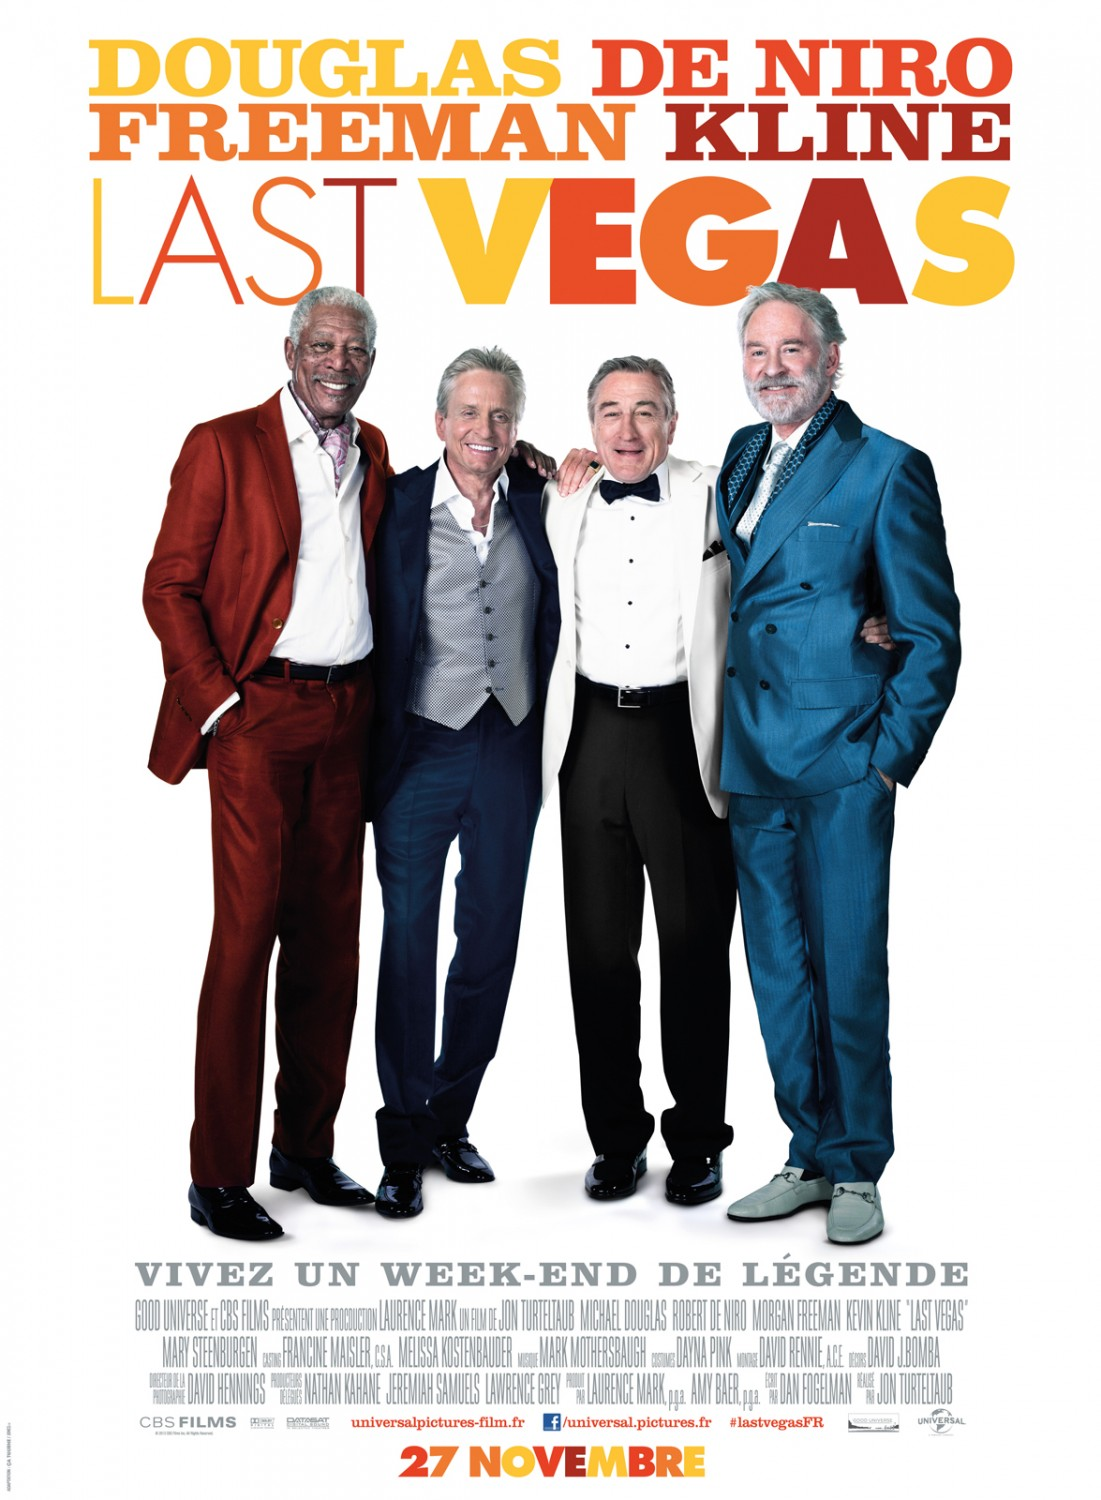 Last Vegas-Official Poster Banner PROMO POSTER-16SETEMBRO2013